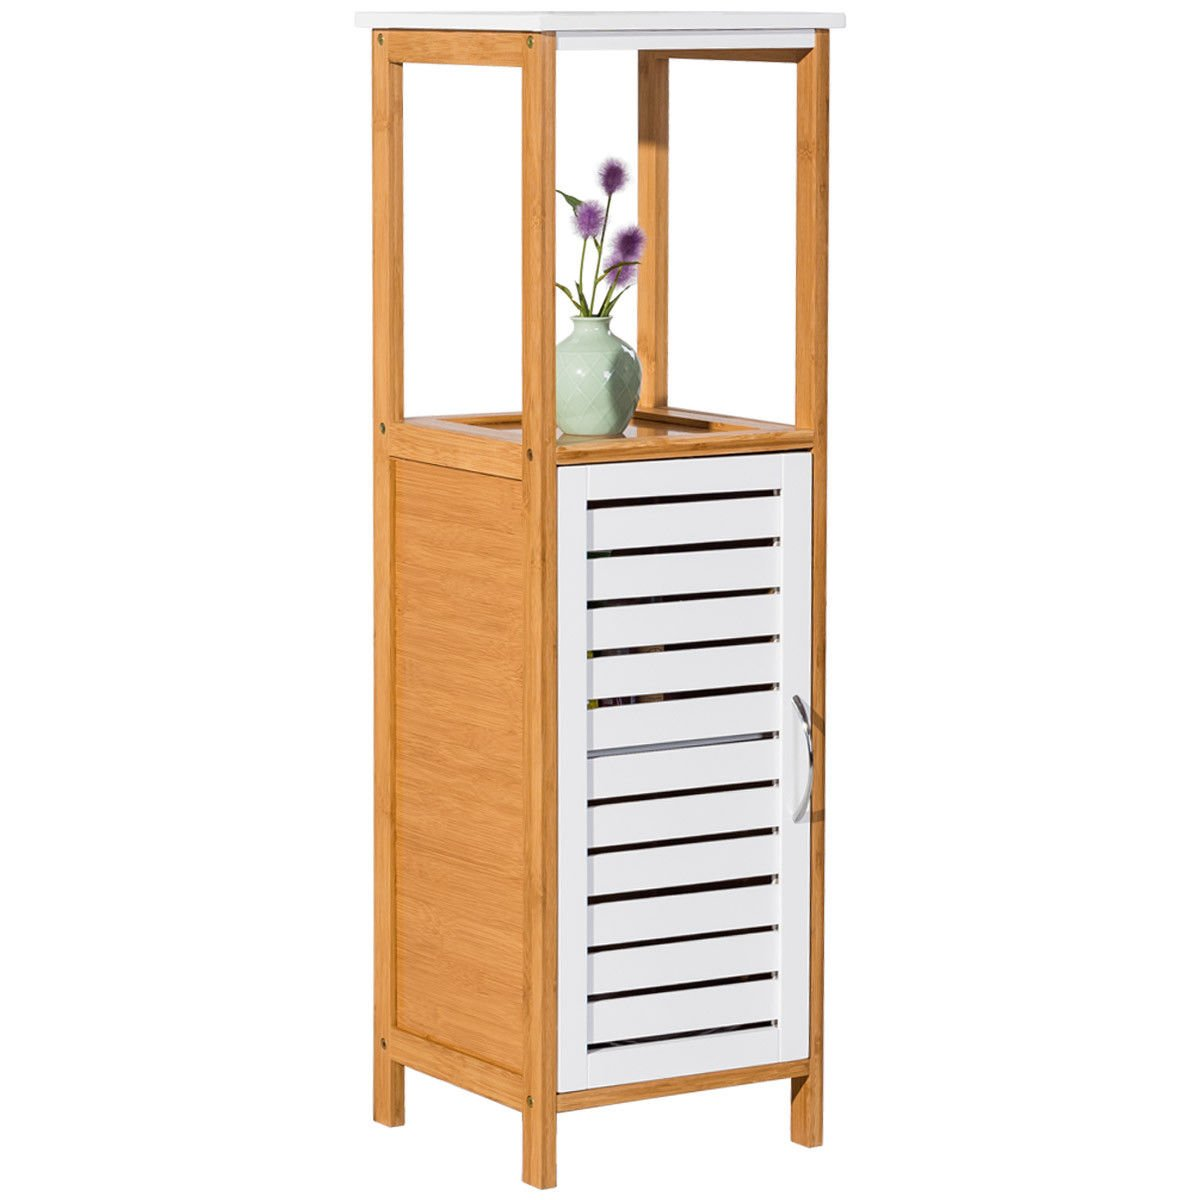 Bonebit Bamboo Bathroom Storage Rack Floor Cabinet Free Standing Shelf Towel Organizer